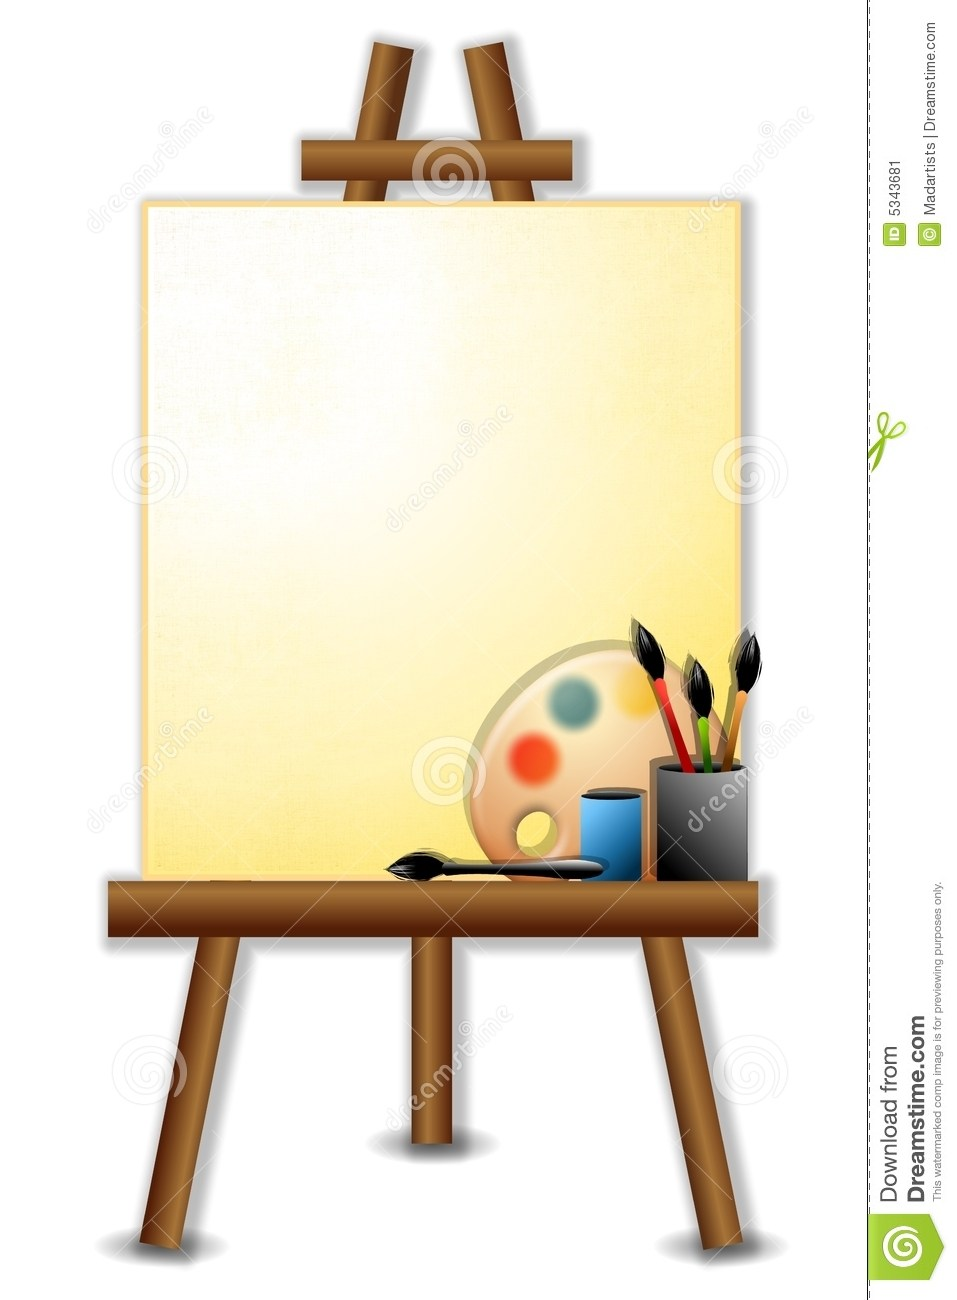 Canvas clipart png stock Canvas clipart 2 » Clipart Portal png stock